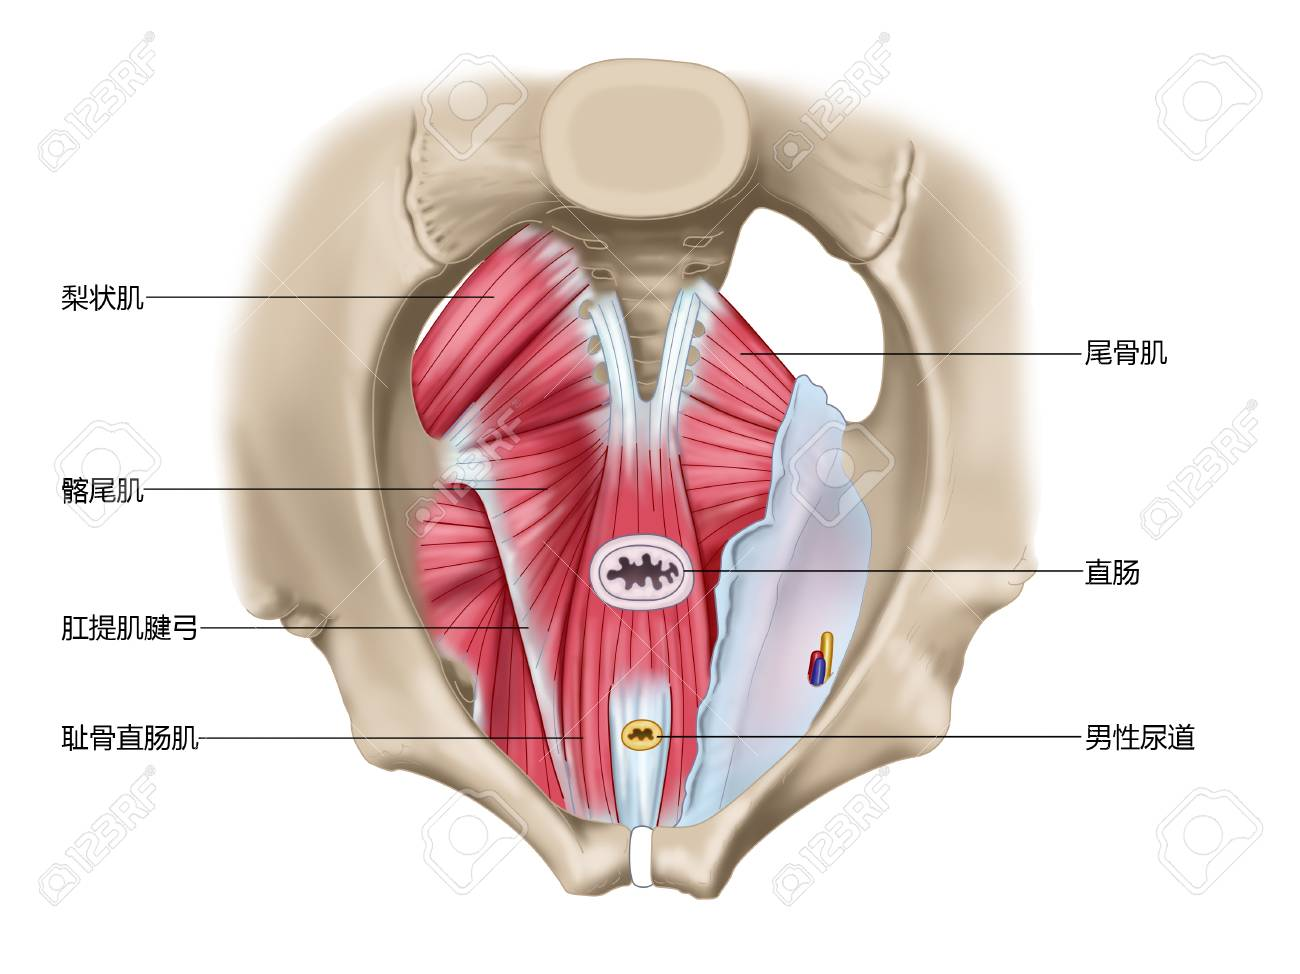 Superior view of pelvic diaphragm muscle of pelvic diaphragm